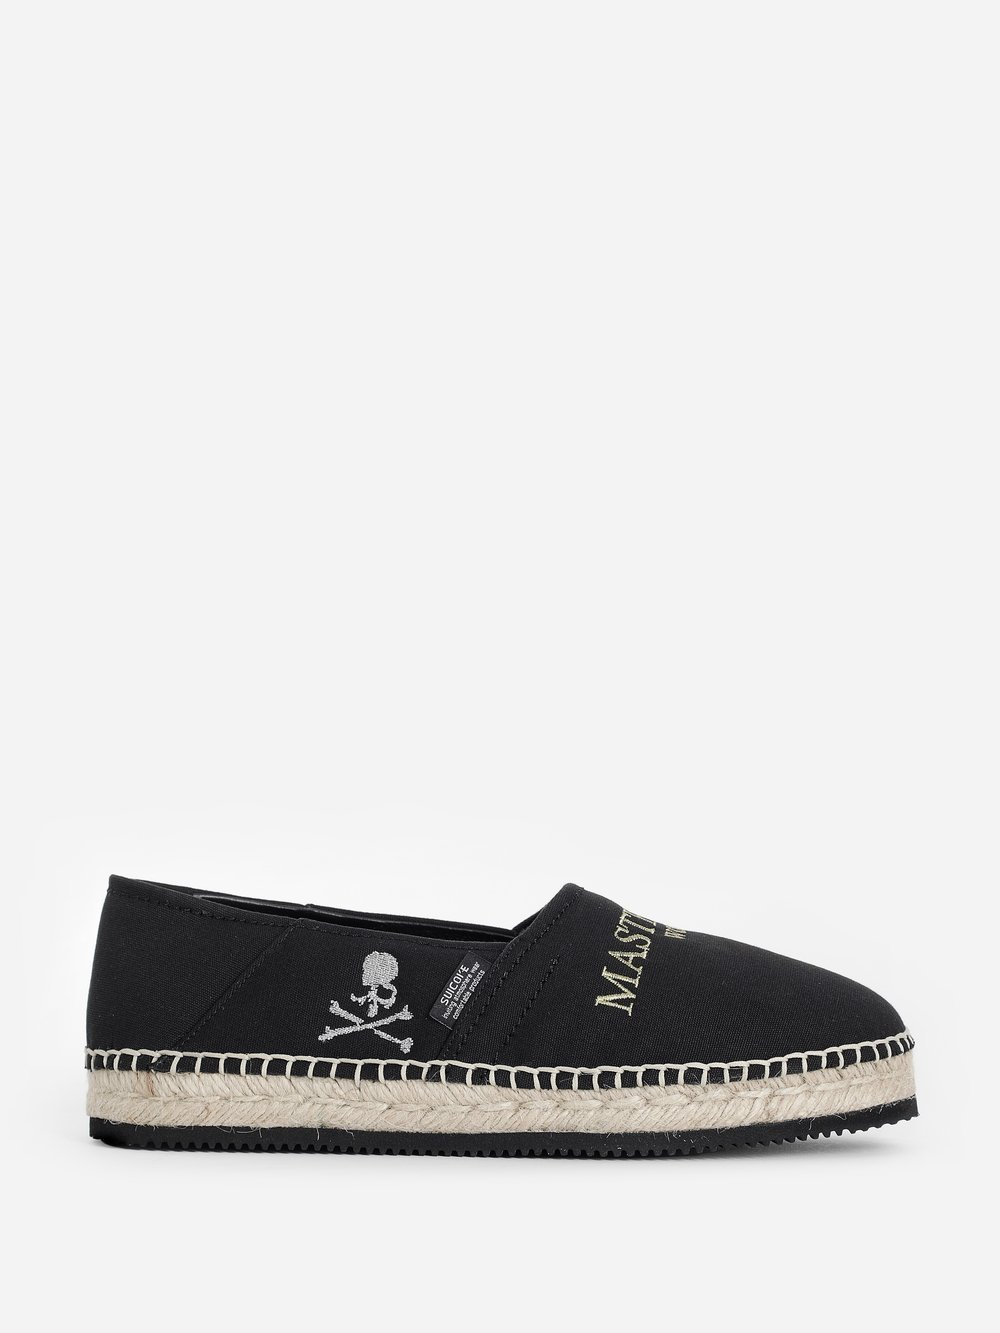 Mastermind World Loafers